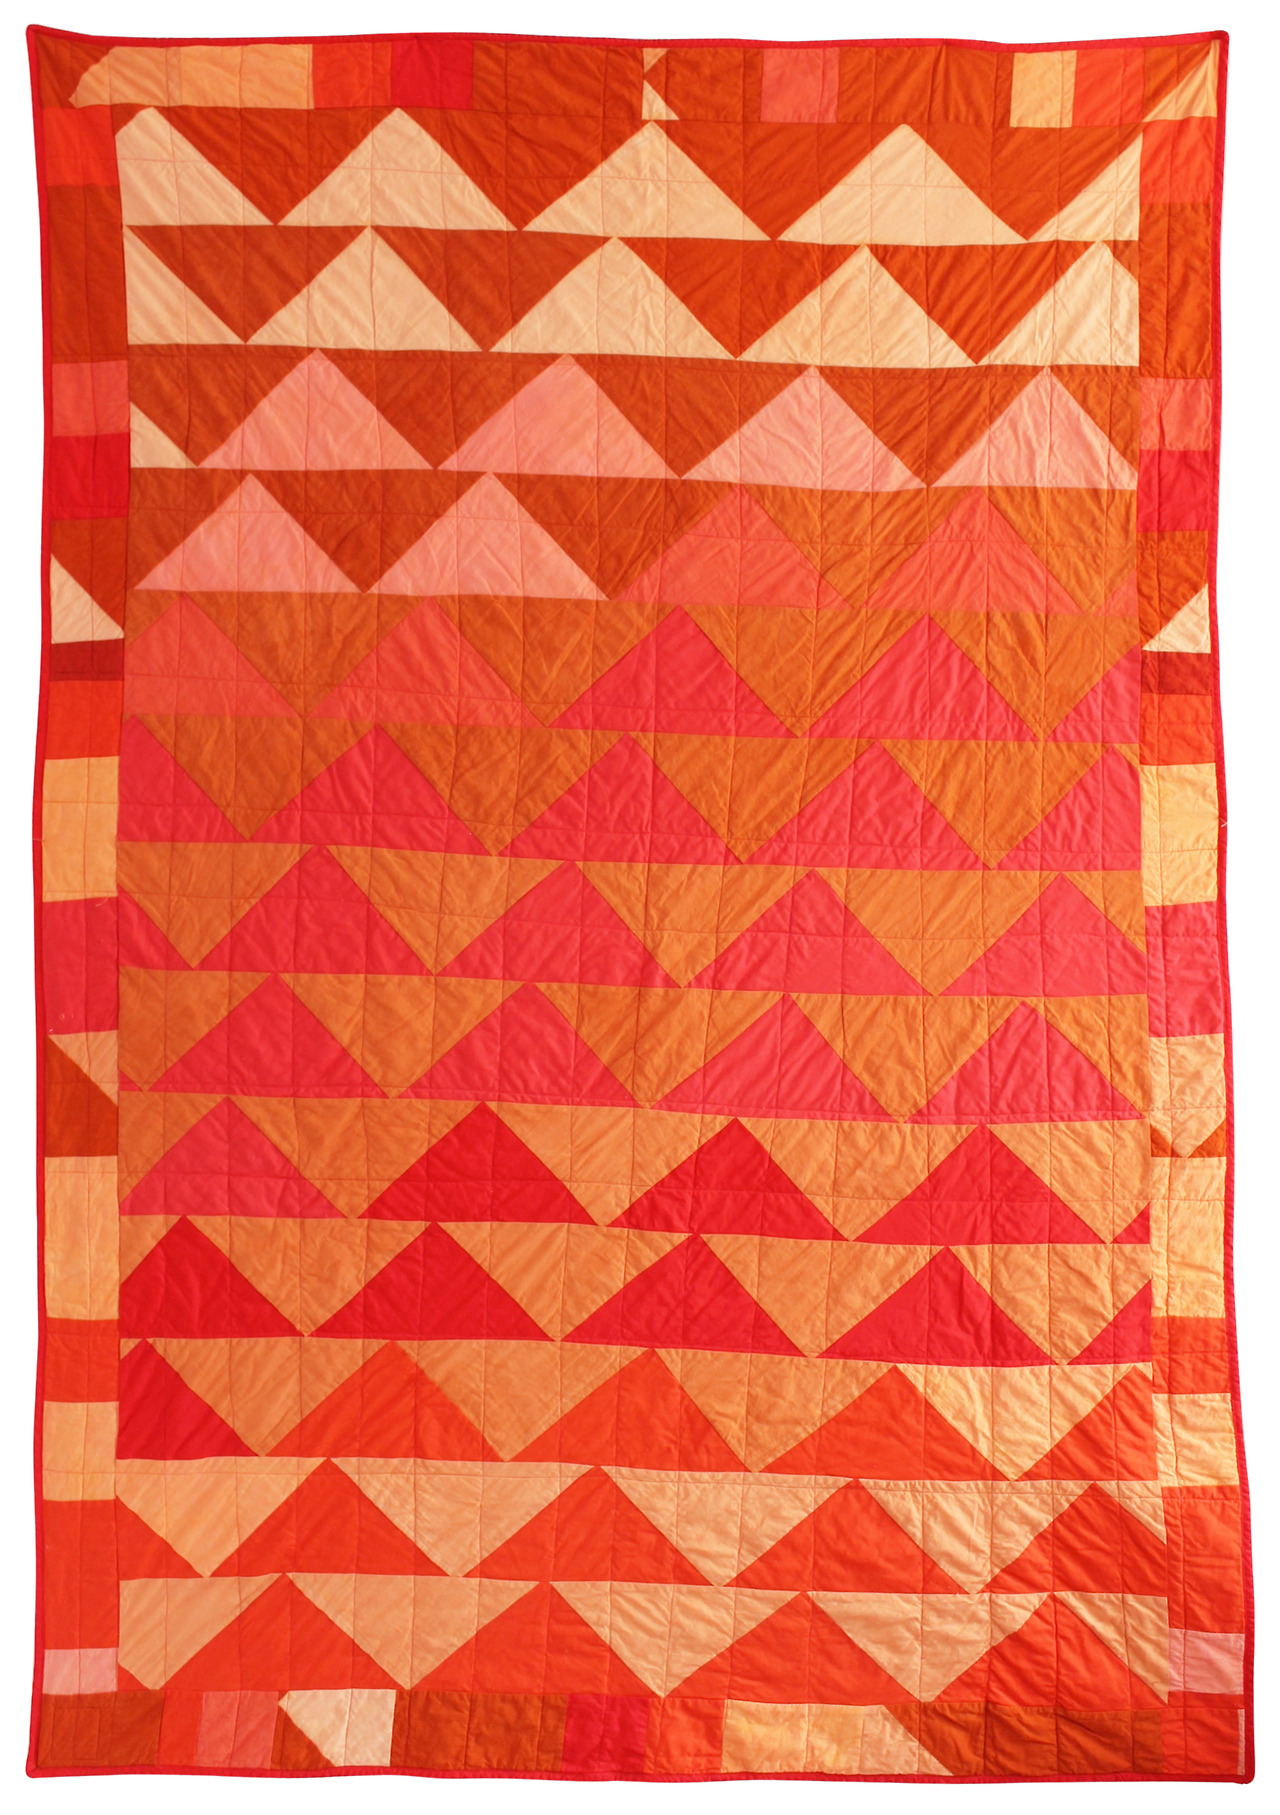 "Summer Night Quilt - 54"" x 80""   Since we're on the subject of summer cravings, I thought I'd tell you I've been craving S'mores lately. That may have something to do with the constant camp fire smell wafting into my apartment - residents of Bushwick love to cook outdoors in the summertime! One whiff of that smokey air and I'm instantly transported to camping trips of my childhood in Leo Carillo, California. We'd make S'mores as we watched the sunset, salty and hungry from swimming in the ocean all day. In this quilt I've built a campfire intuitively, almost unintentionally. Alas, my S'mores craving is still unsatisfied.  Here .   - Gina Rockenwagner"